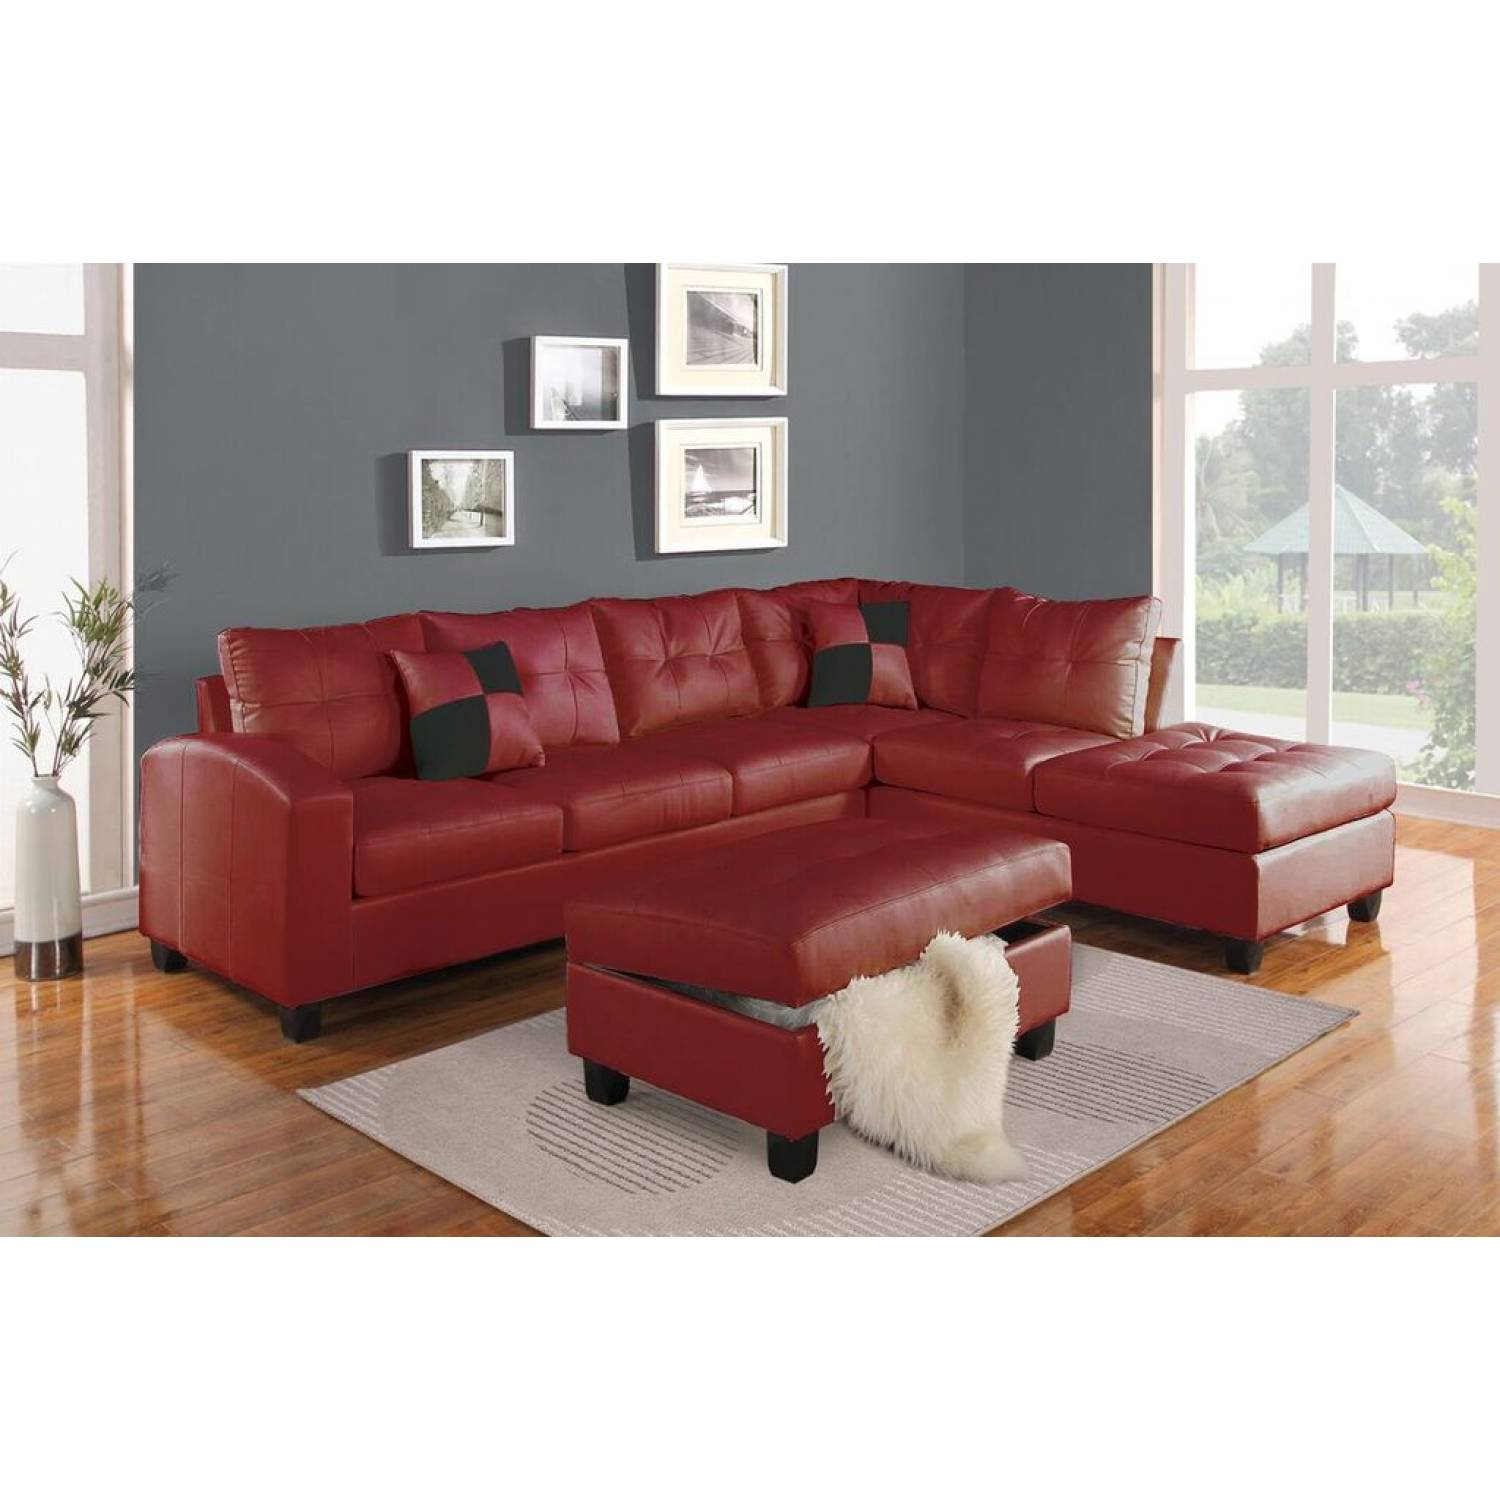 51185 KIVA RED SECTIONAL SOFA